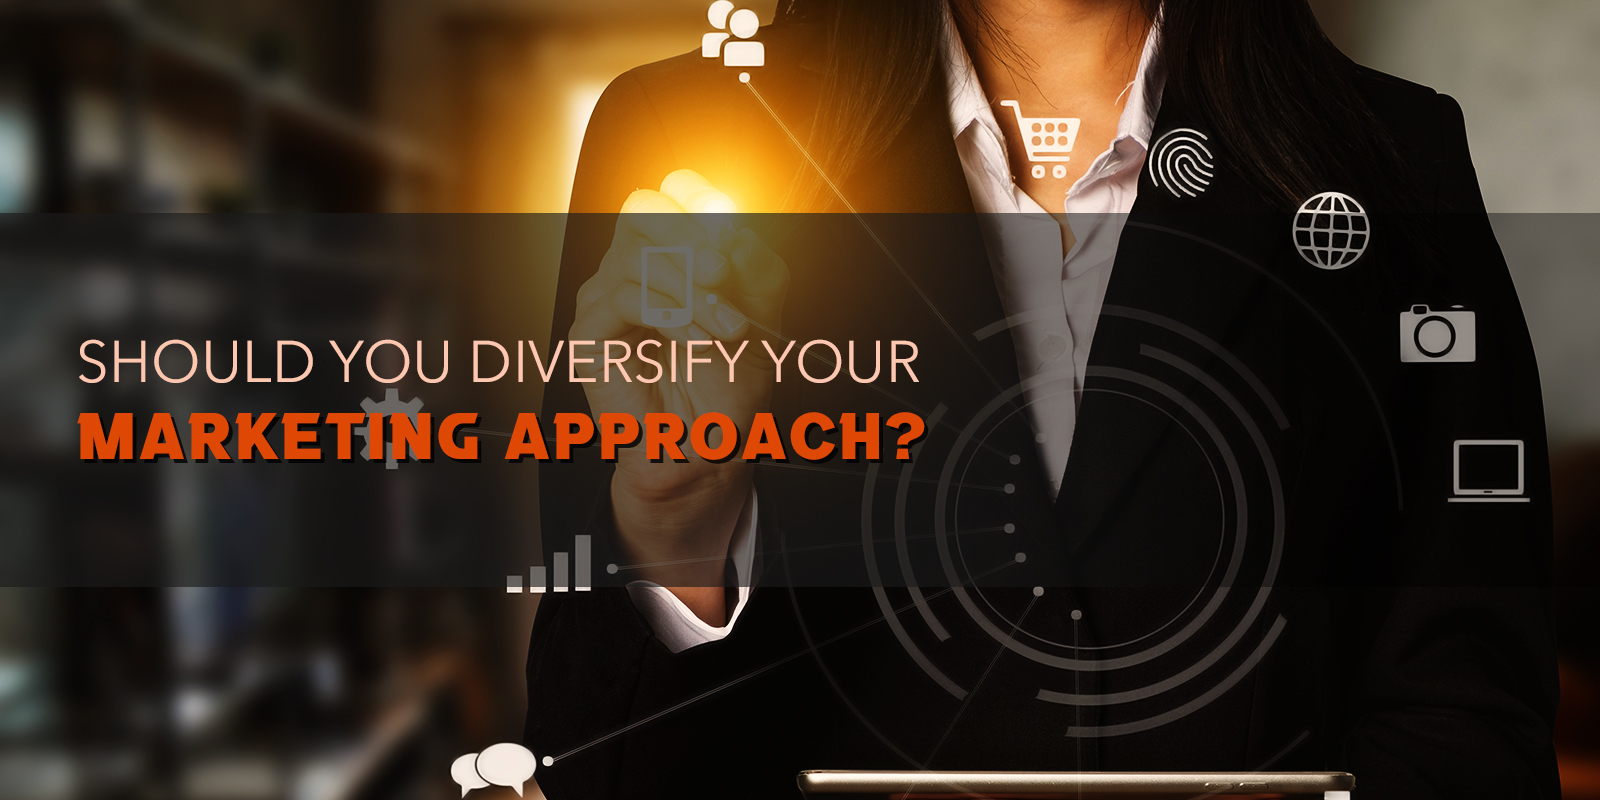 Should You Diversify Your Marketing Approach?